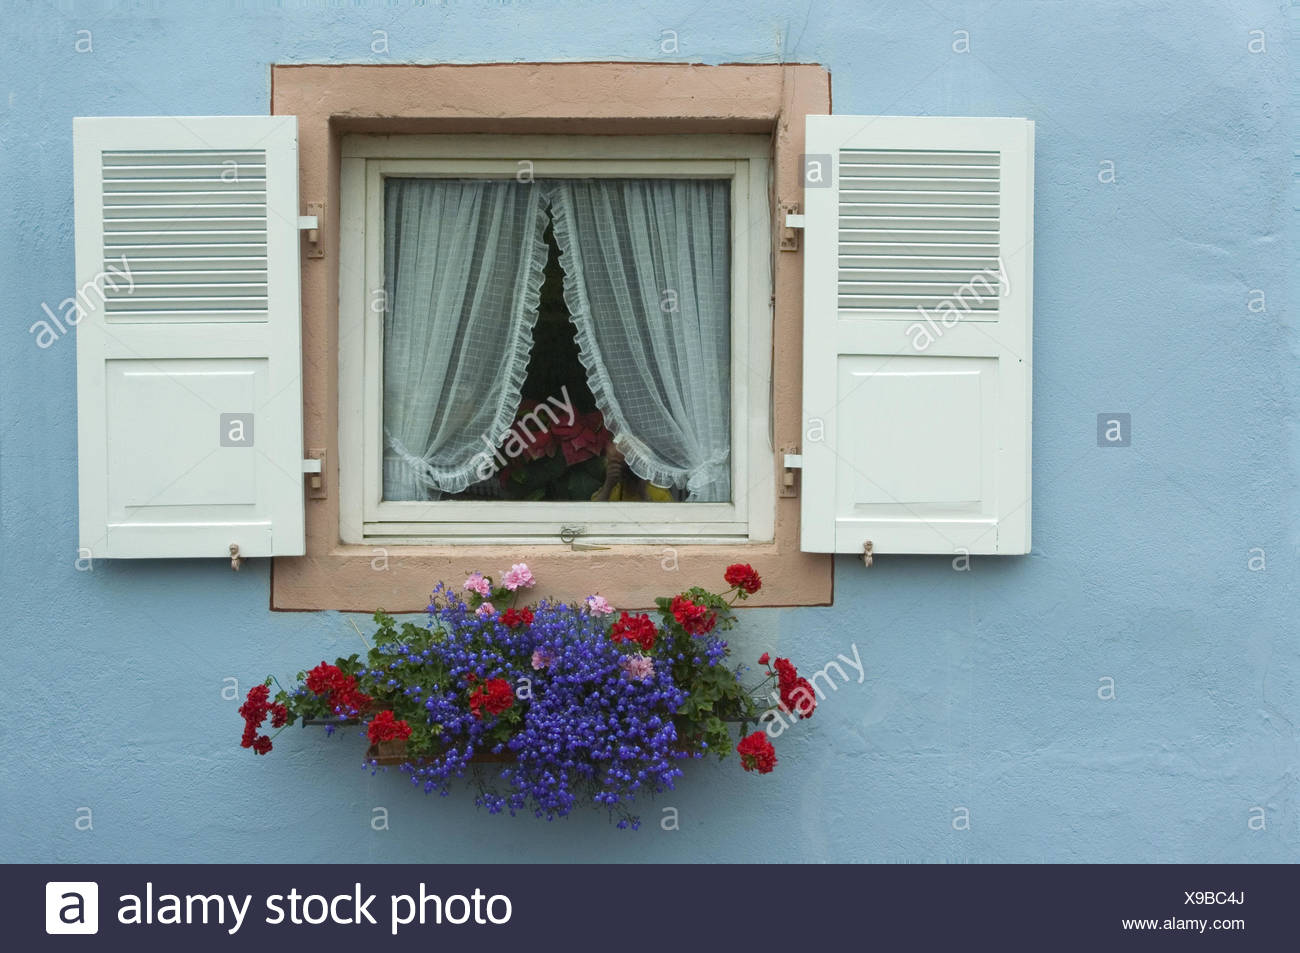 House, window, floral decoration, detail, residential house, facade, light blue, shutters, white, openly, curtains, window box, flowers, geraniums, Pelargonien, - Stock Image